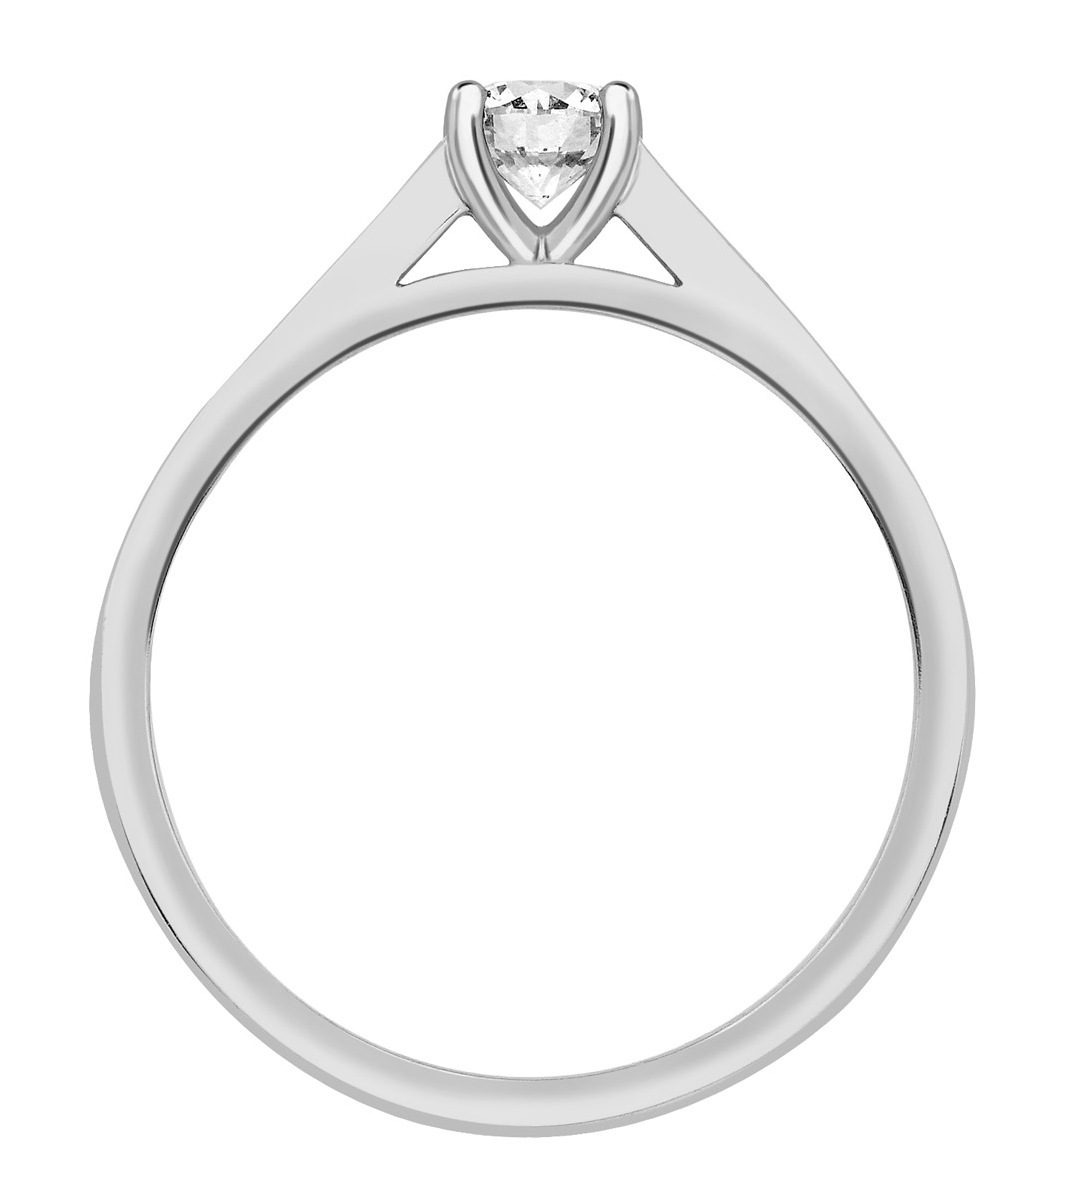 Round Four Claw Platinum Channel Set Engagement Ring CRC739  Image 2